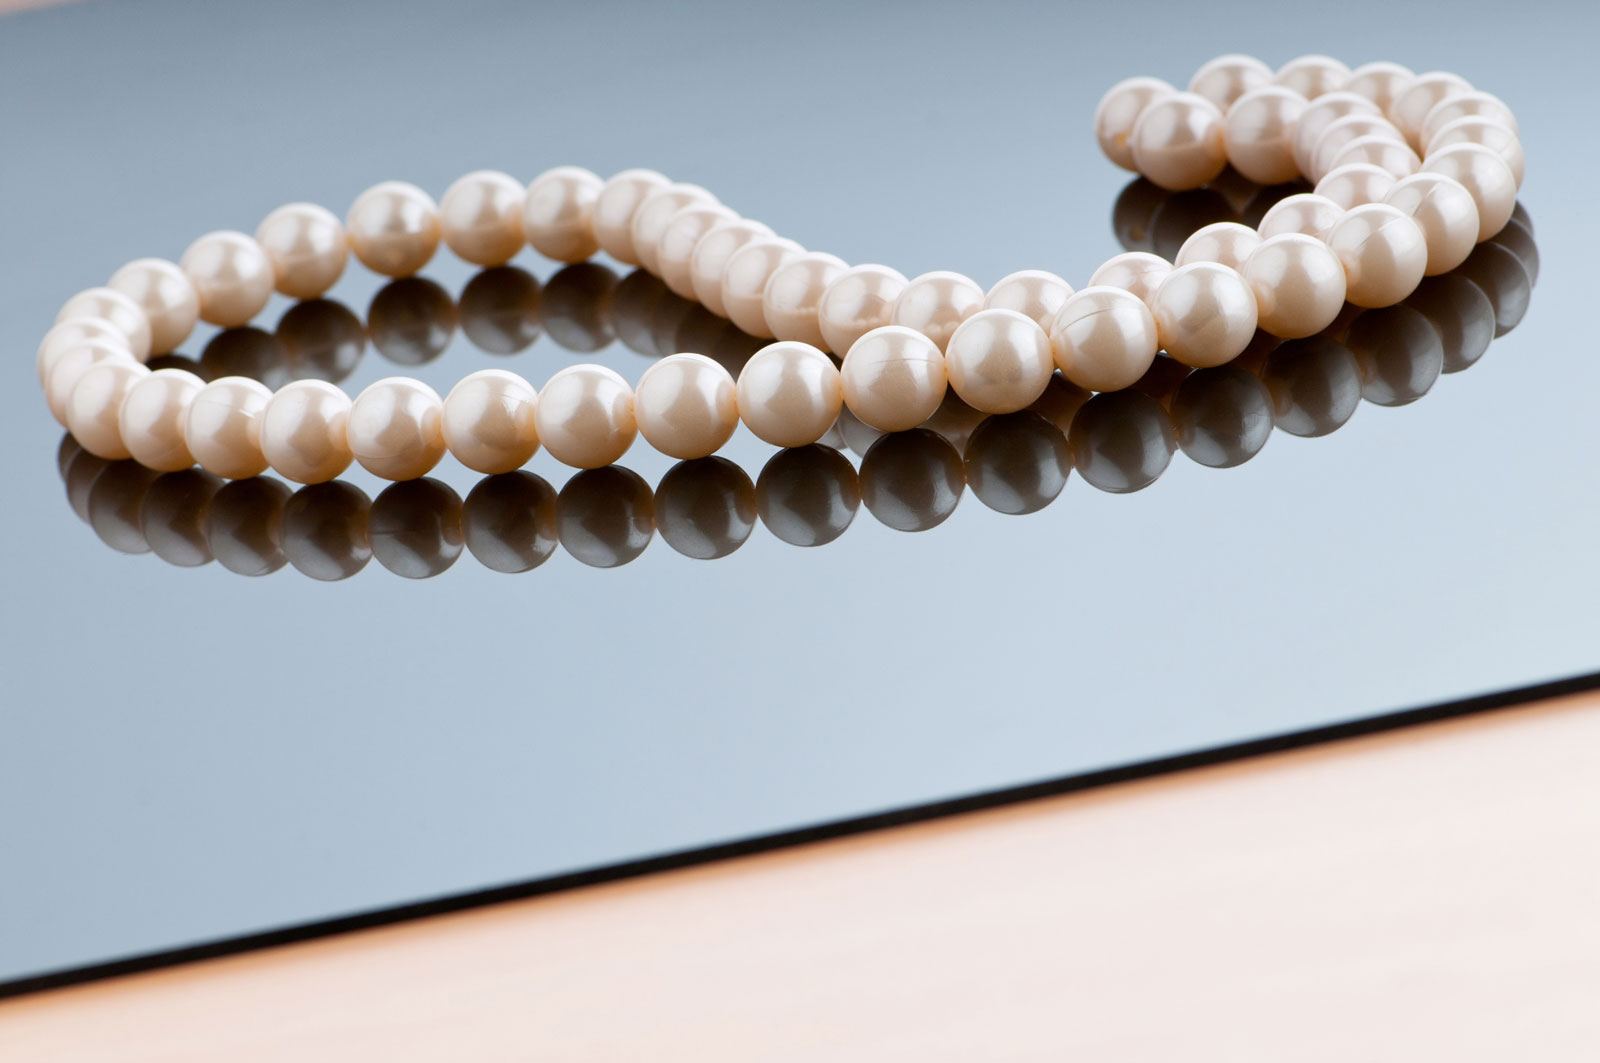 Pearl Necklace | 6 Things To Look For From A Good Online Jewelry Store